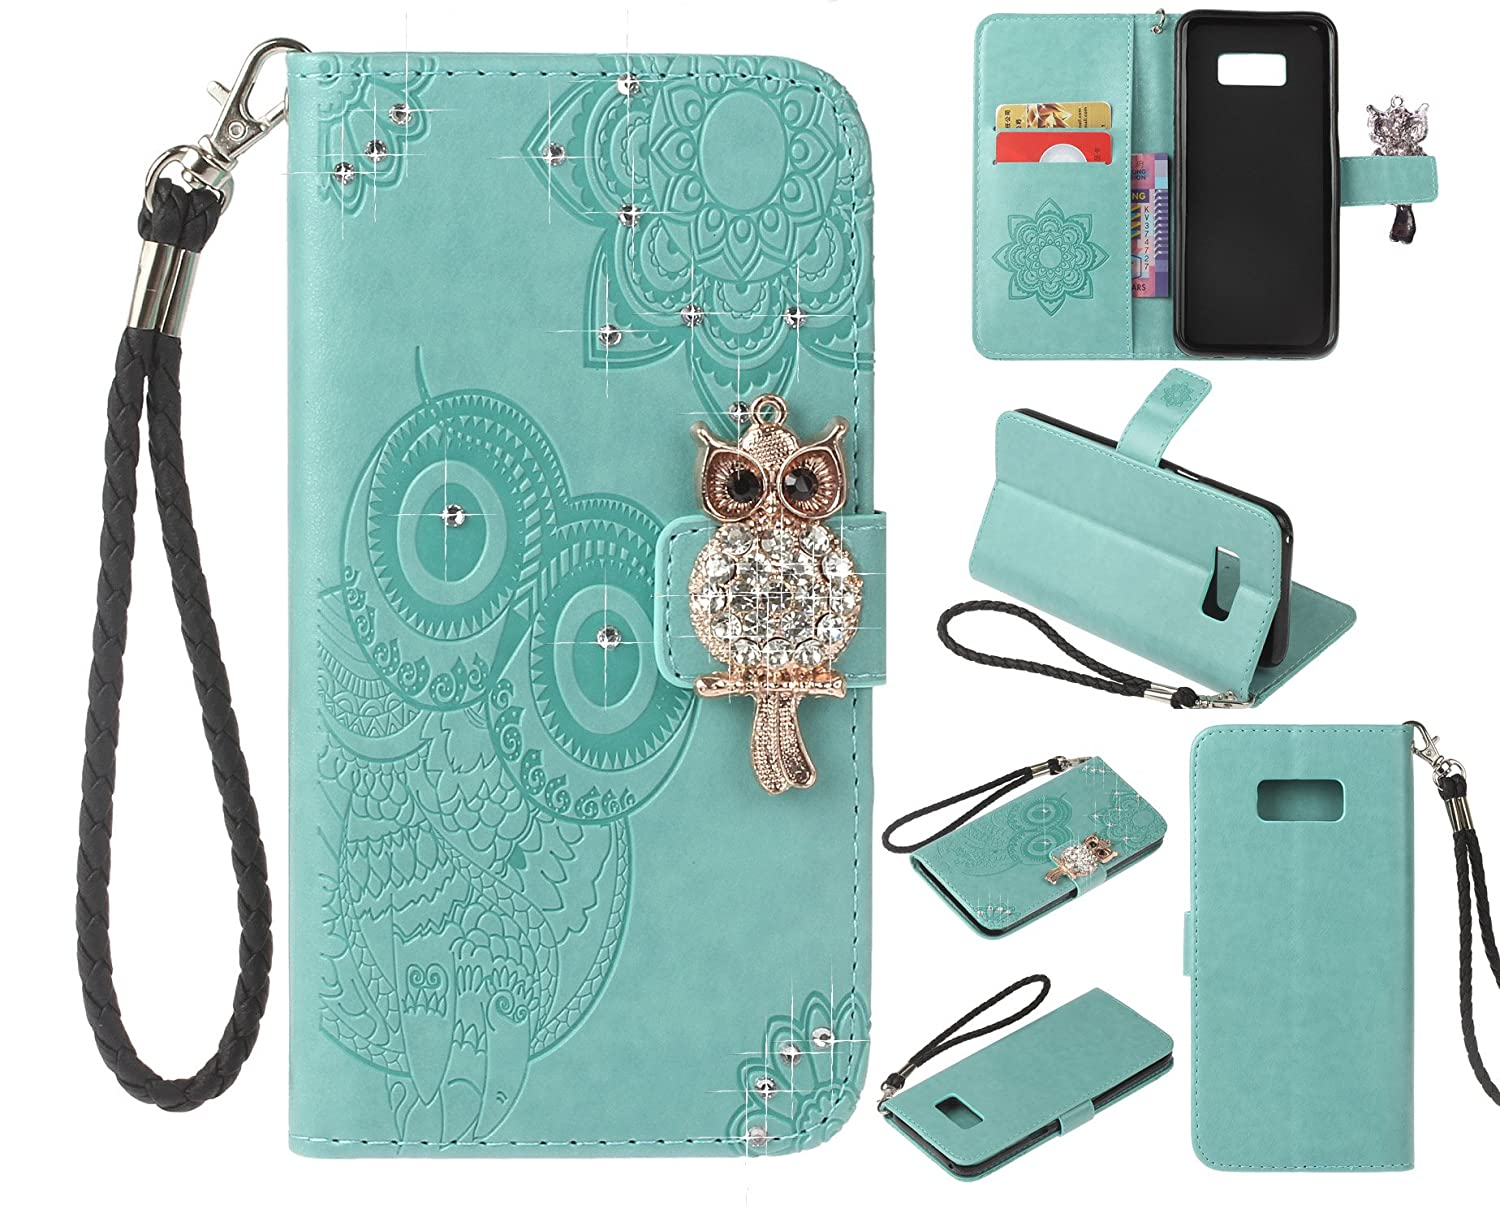 Cfrau Diamond Kickstand Case with Black Stylus for Samsung Galaxy S8 Plus,Luxury Embossed Crystal 3D Owl Flower Bling Glitter Wallet PU Leather Shockproof Soft TPU Wrist String Case - Red